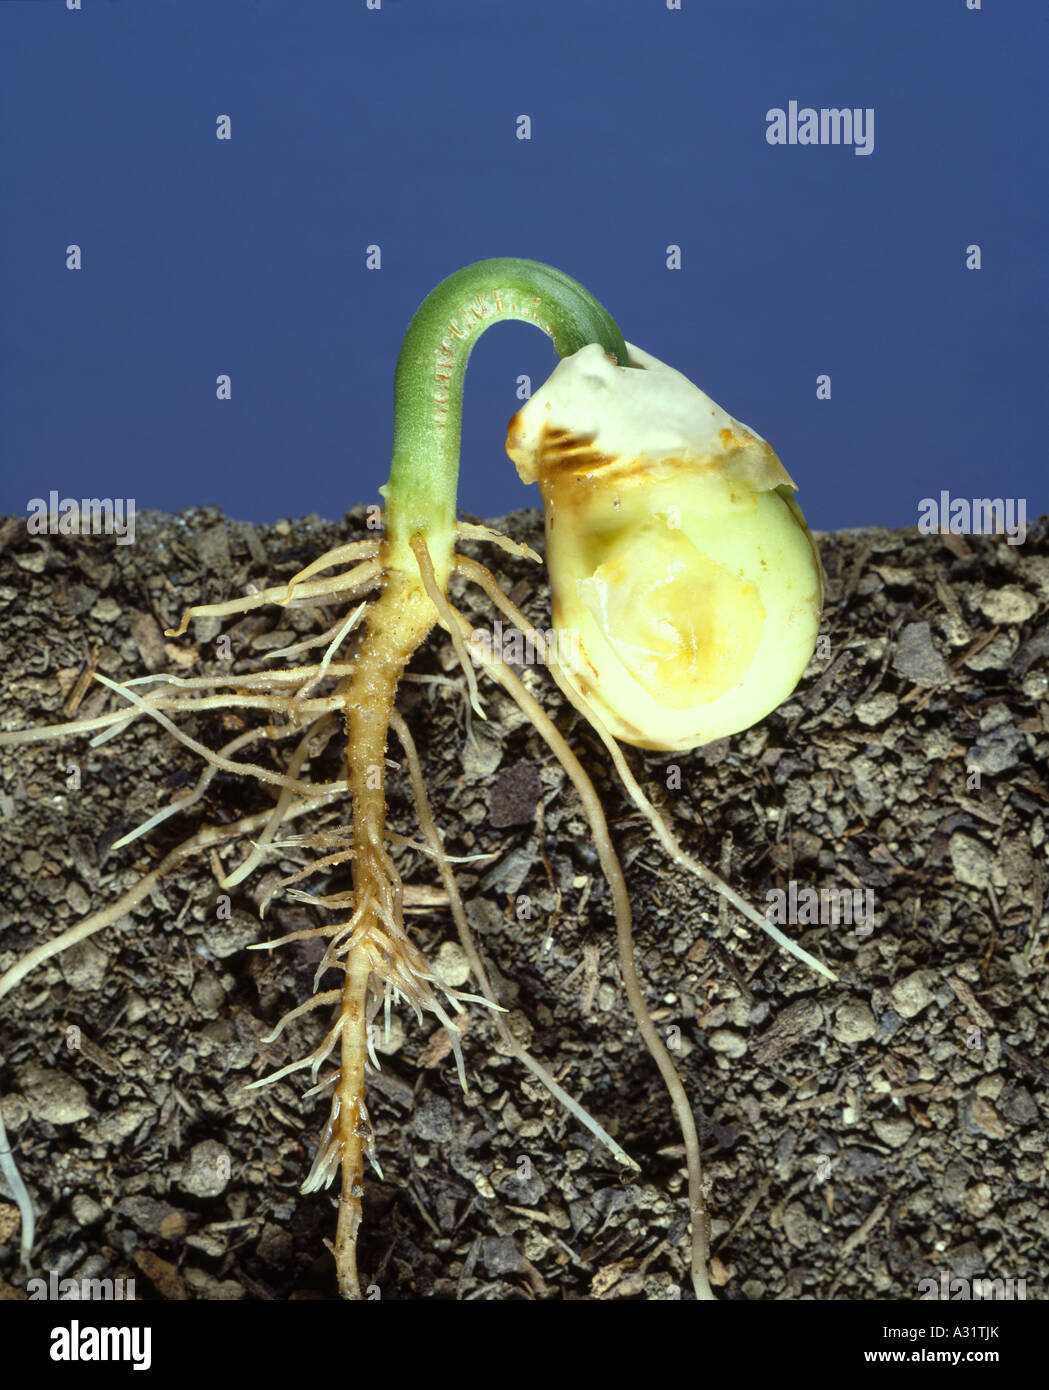 Lima Bean Germination Showing Emerging Cotyledons From